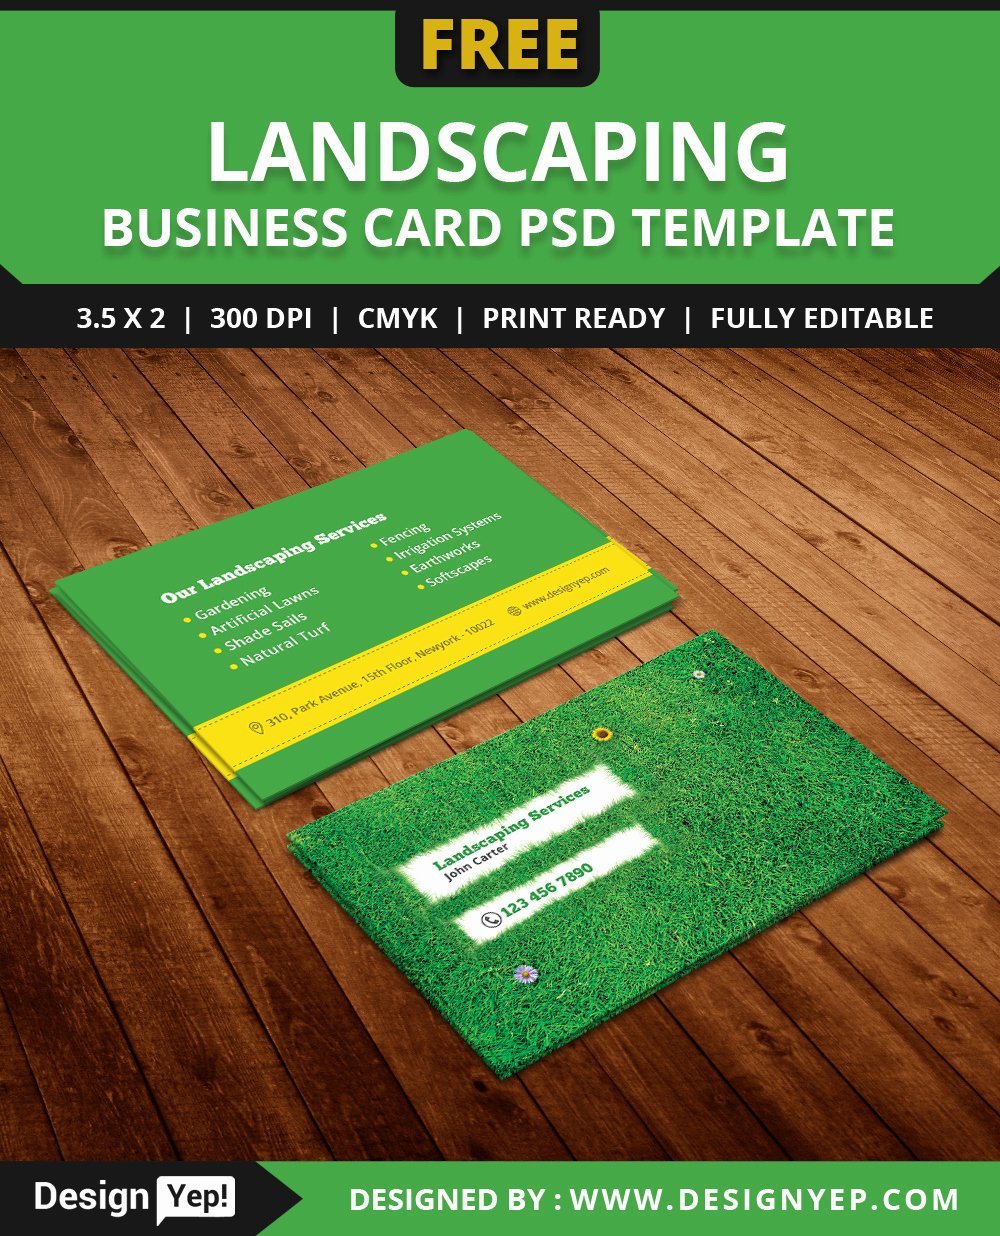 Landscape Business Card Template Awesome Free Landscaping Business Card Template Psd On Behance